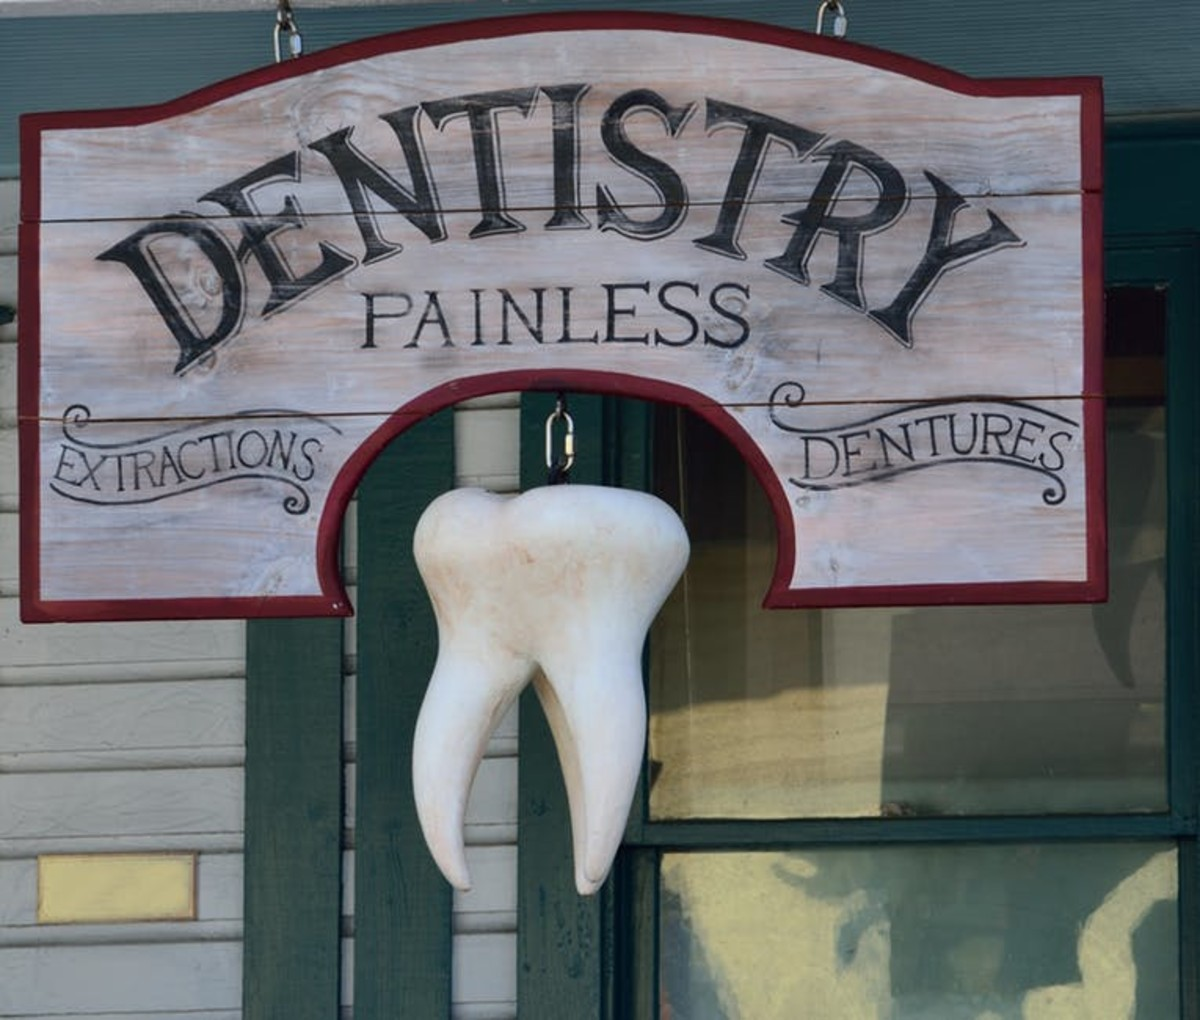 A dentist may help diagnose and treat TMJ